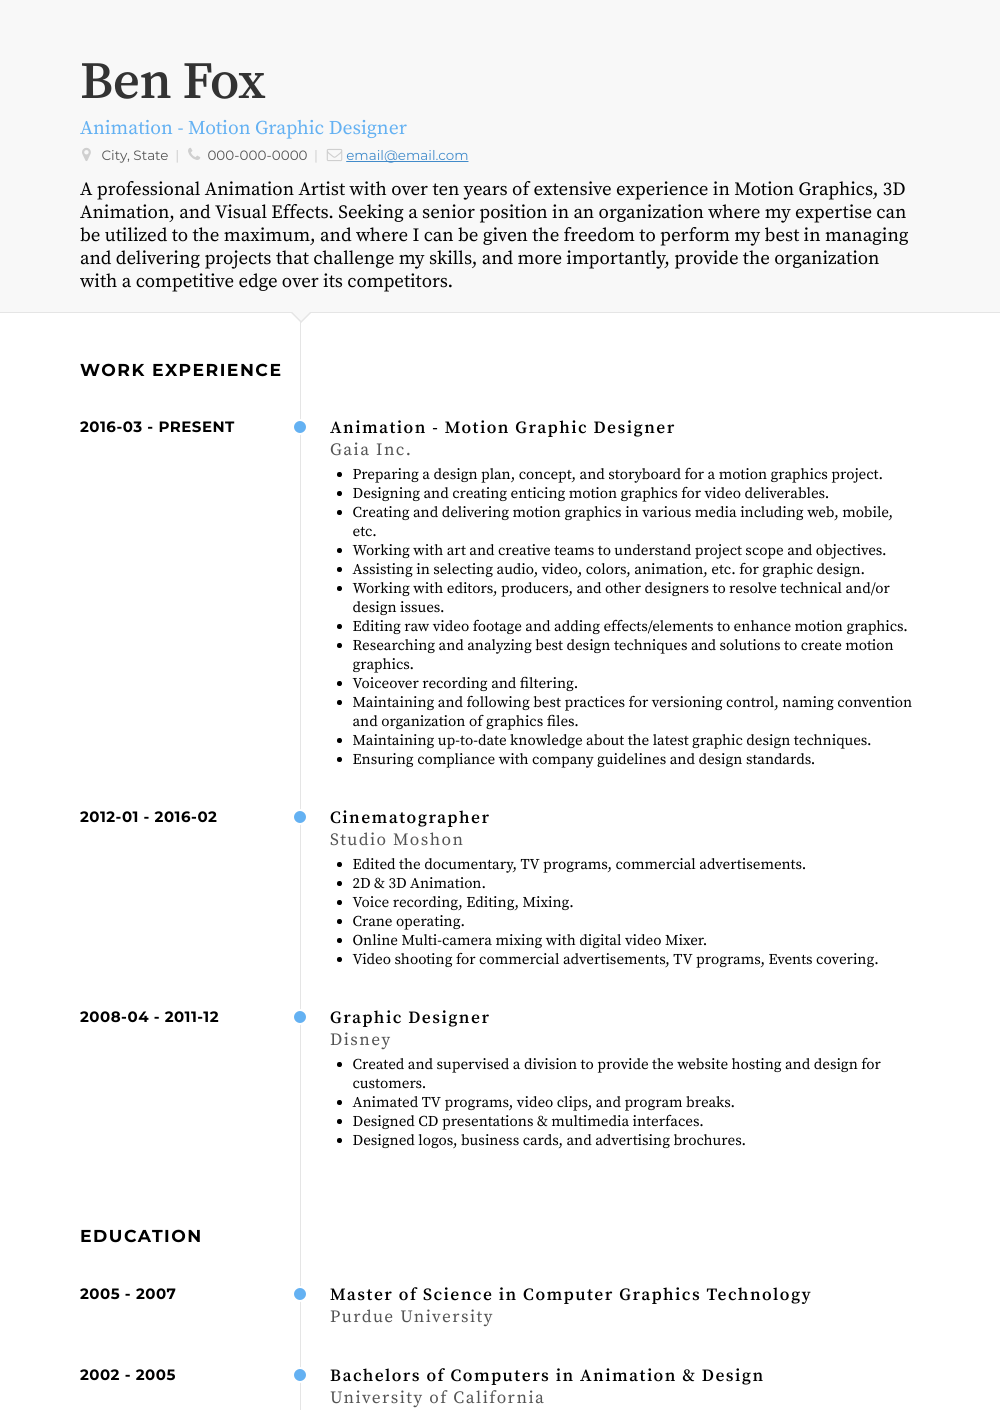 Animation - Motion Graphic Designer Resume Sample and Template